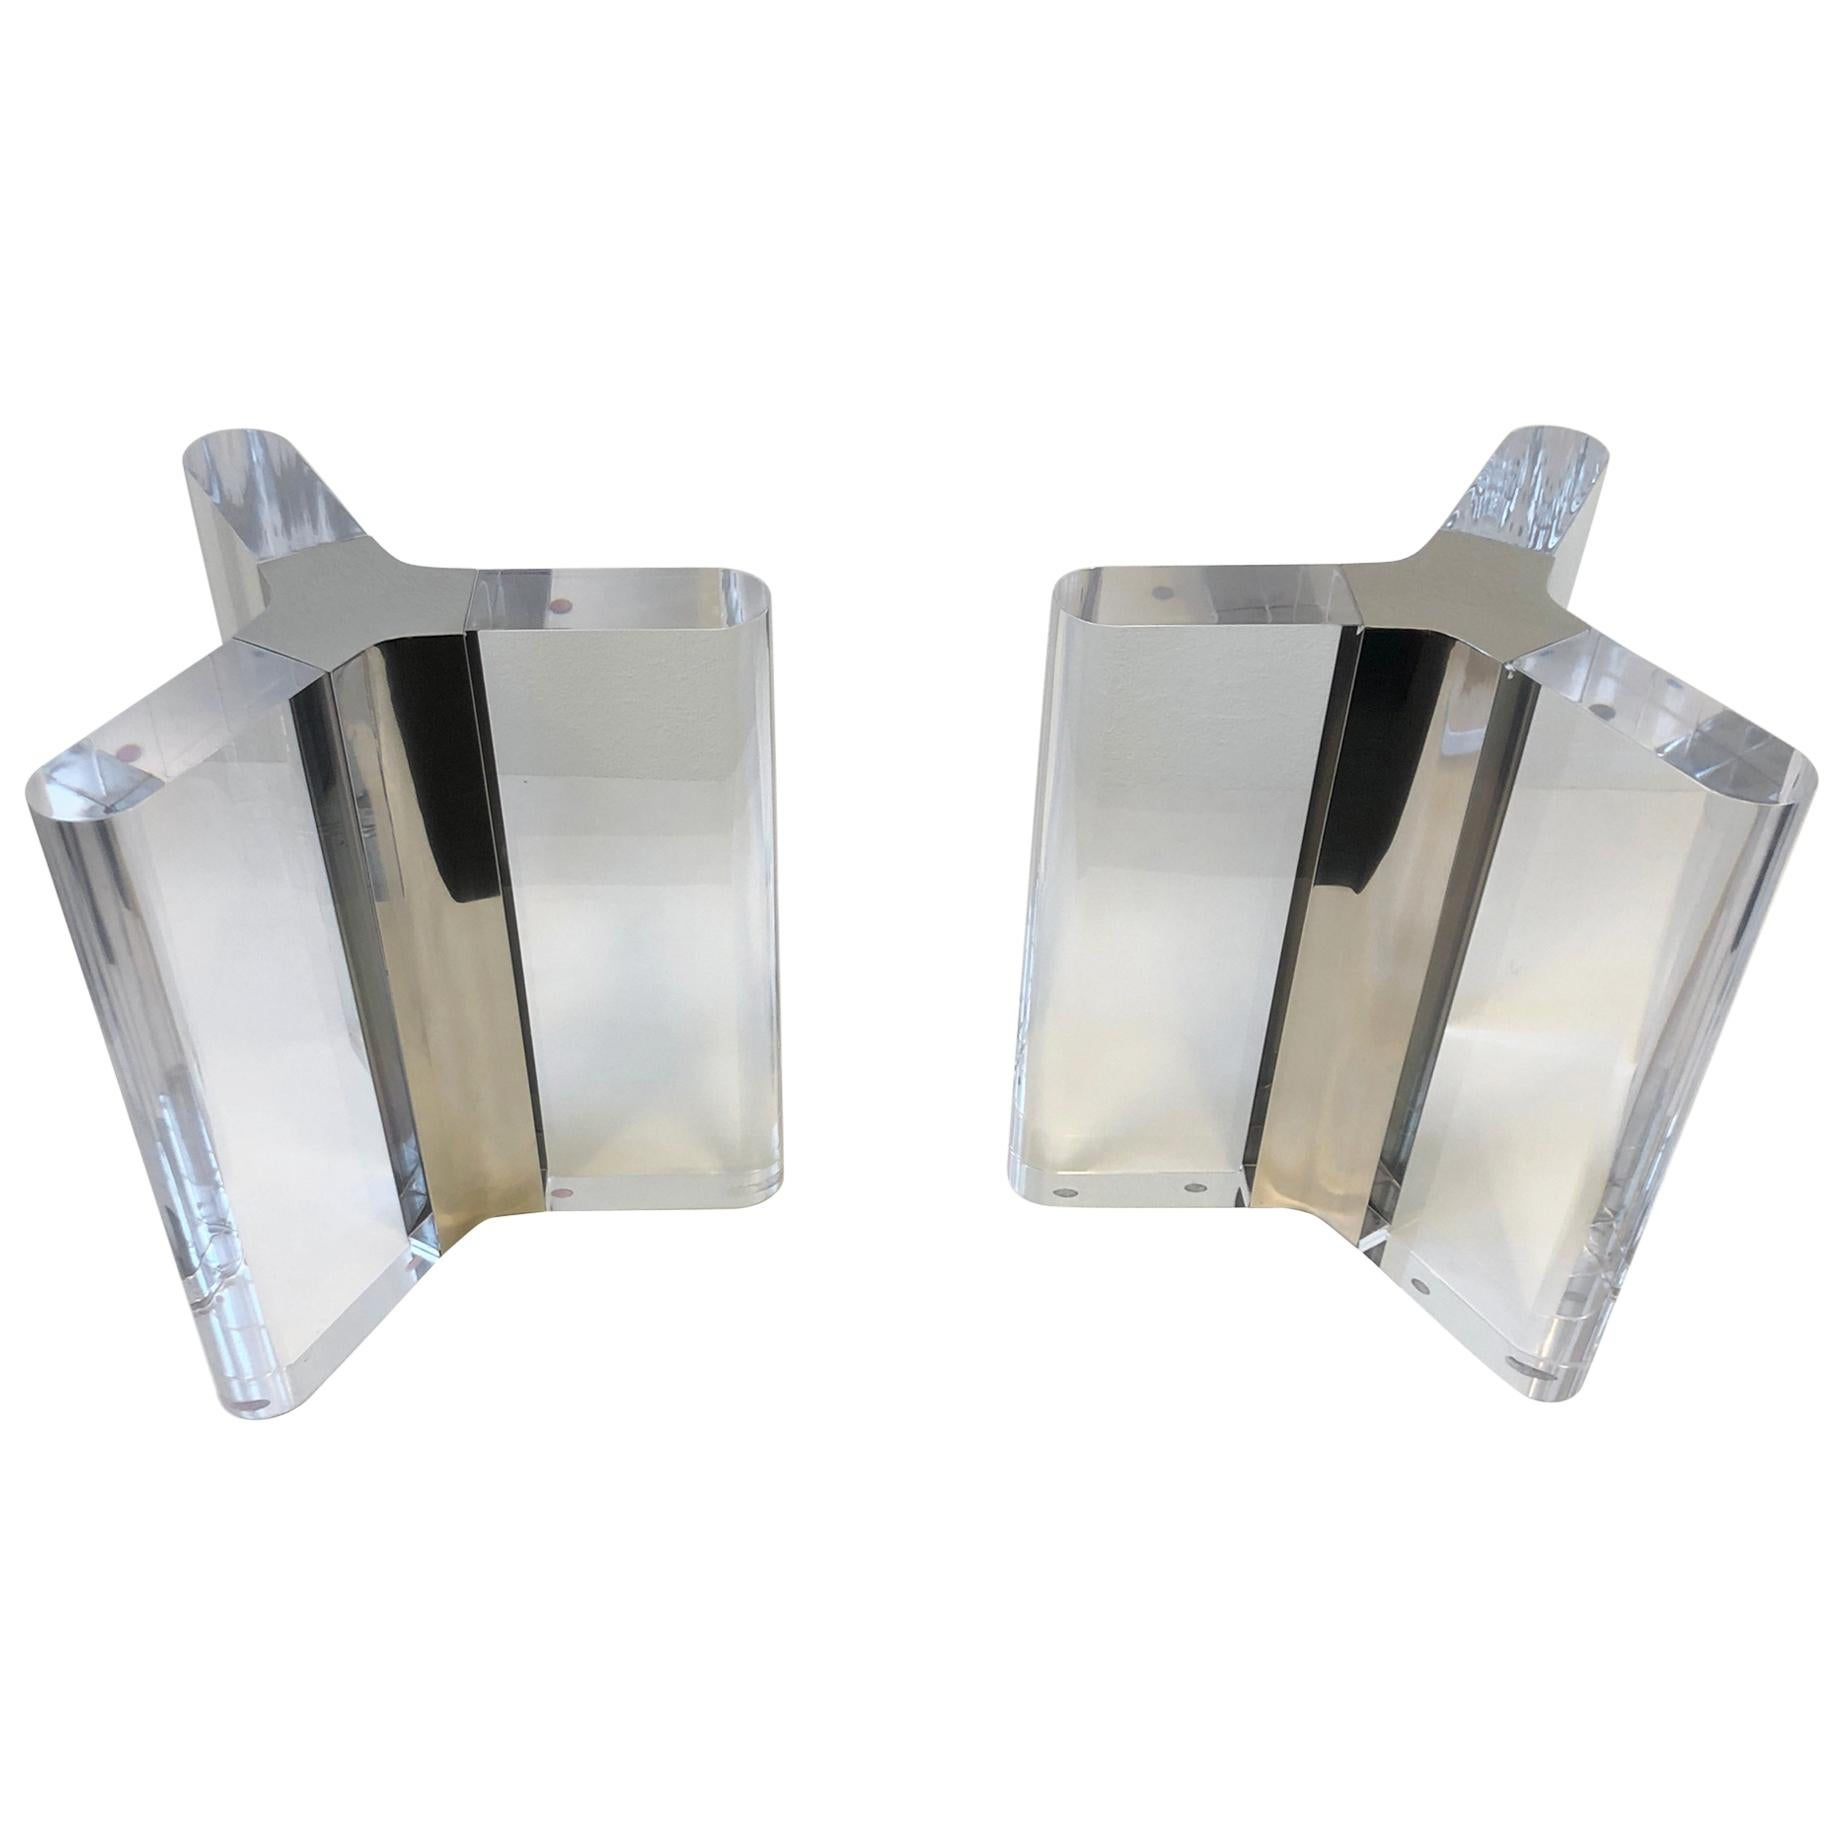 Pair of Lucite and Chrome Dining Table Bases by Charles Hollis Jones